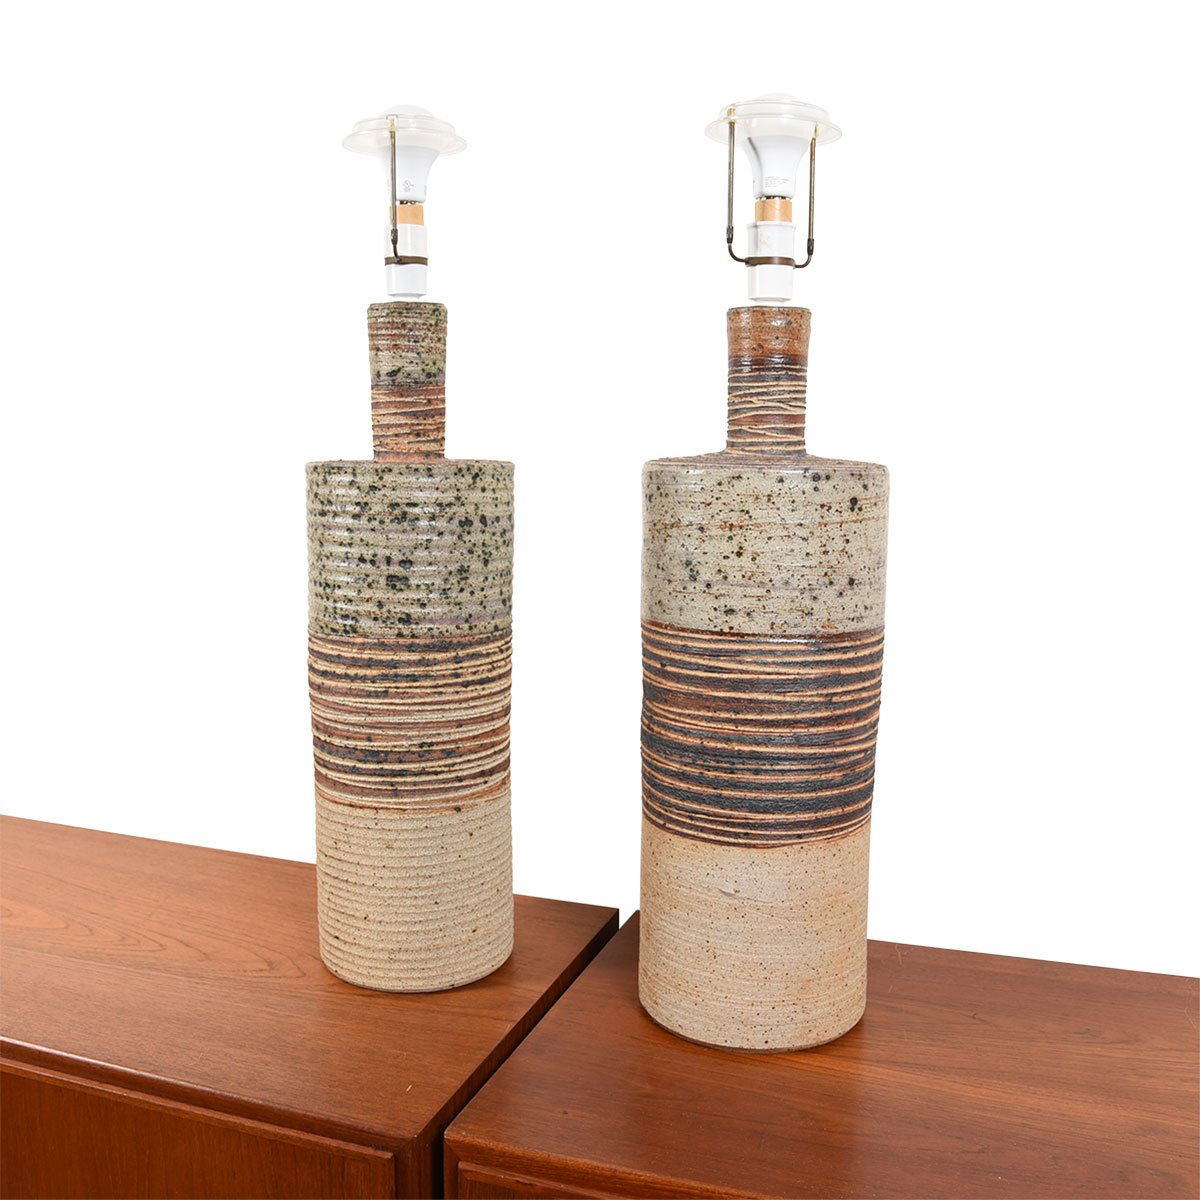 Tue Poulsen Pair of Danish Mid Century Ceramic Pottery Table Lamps